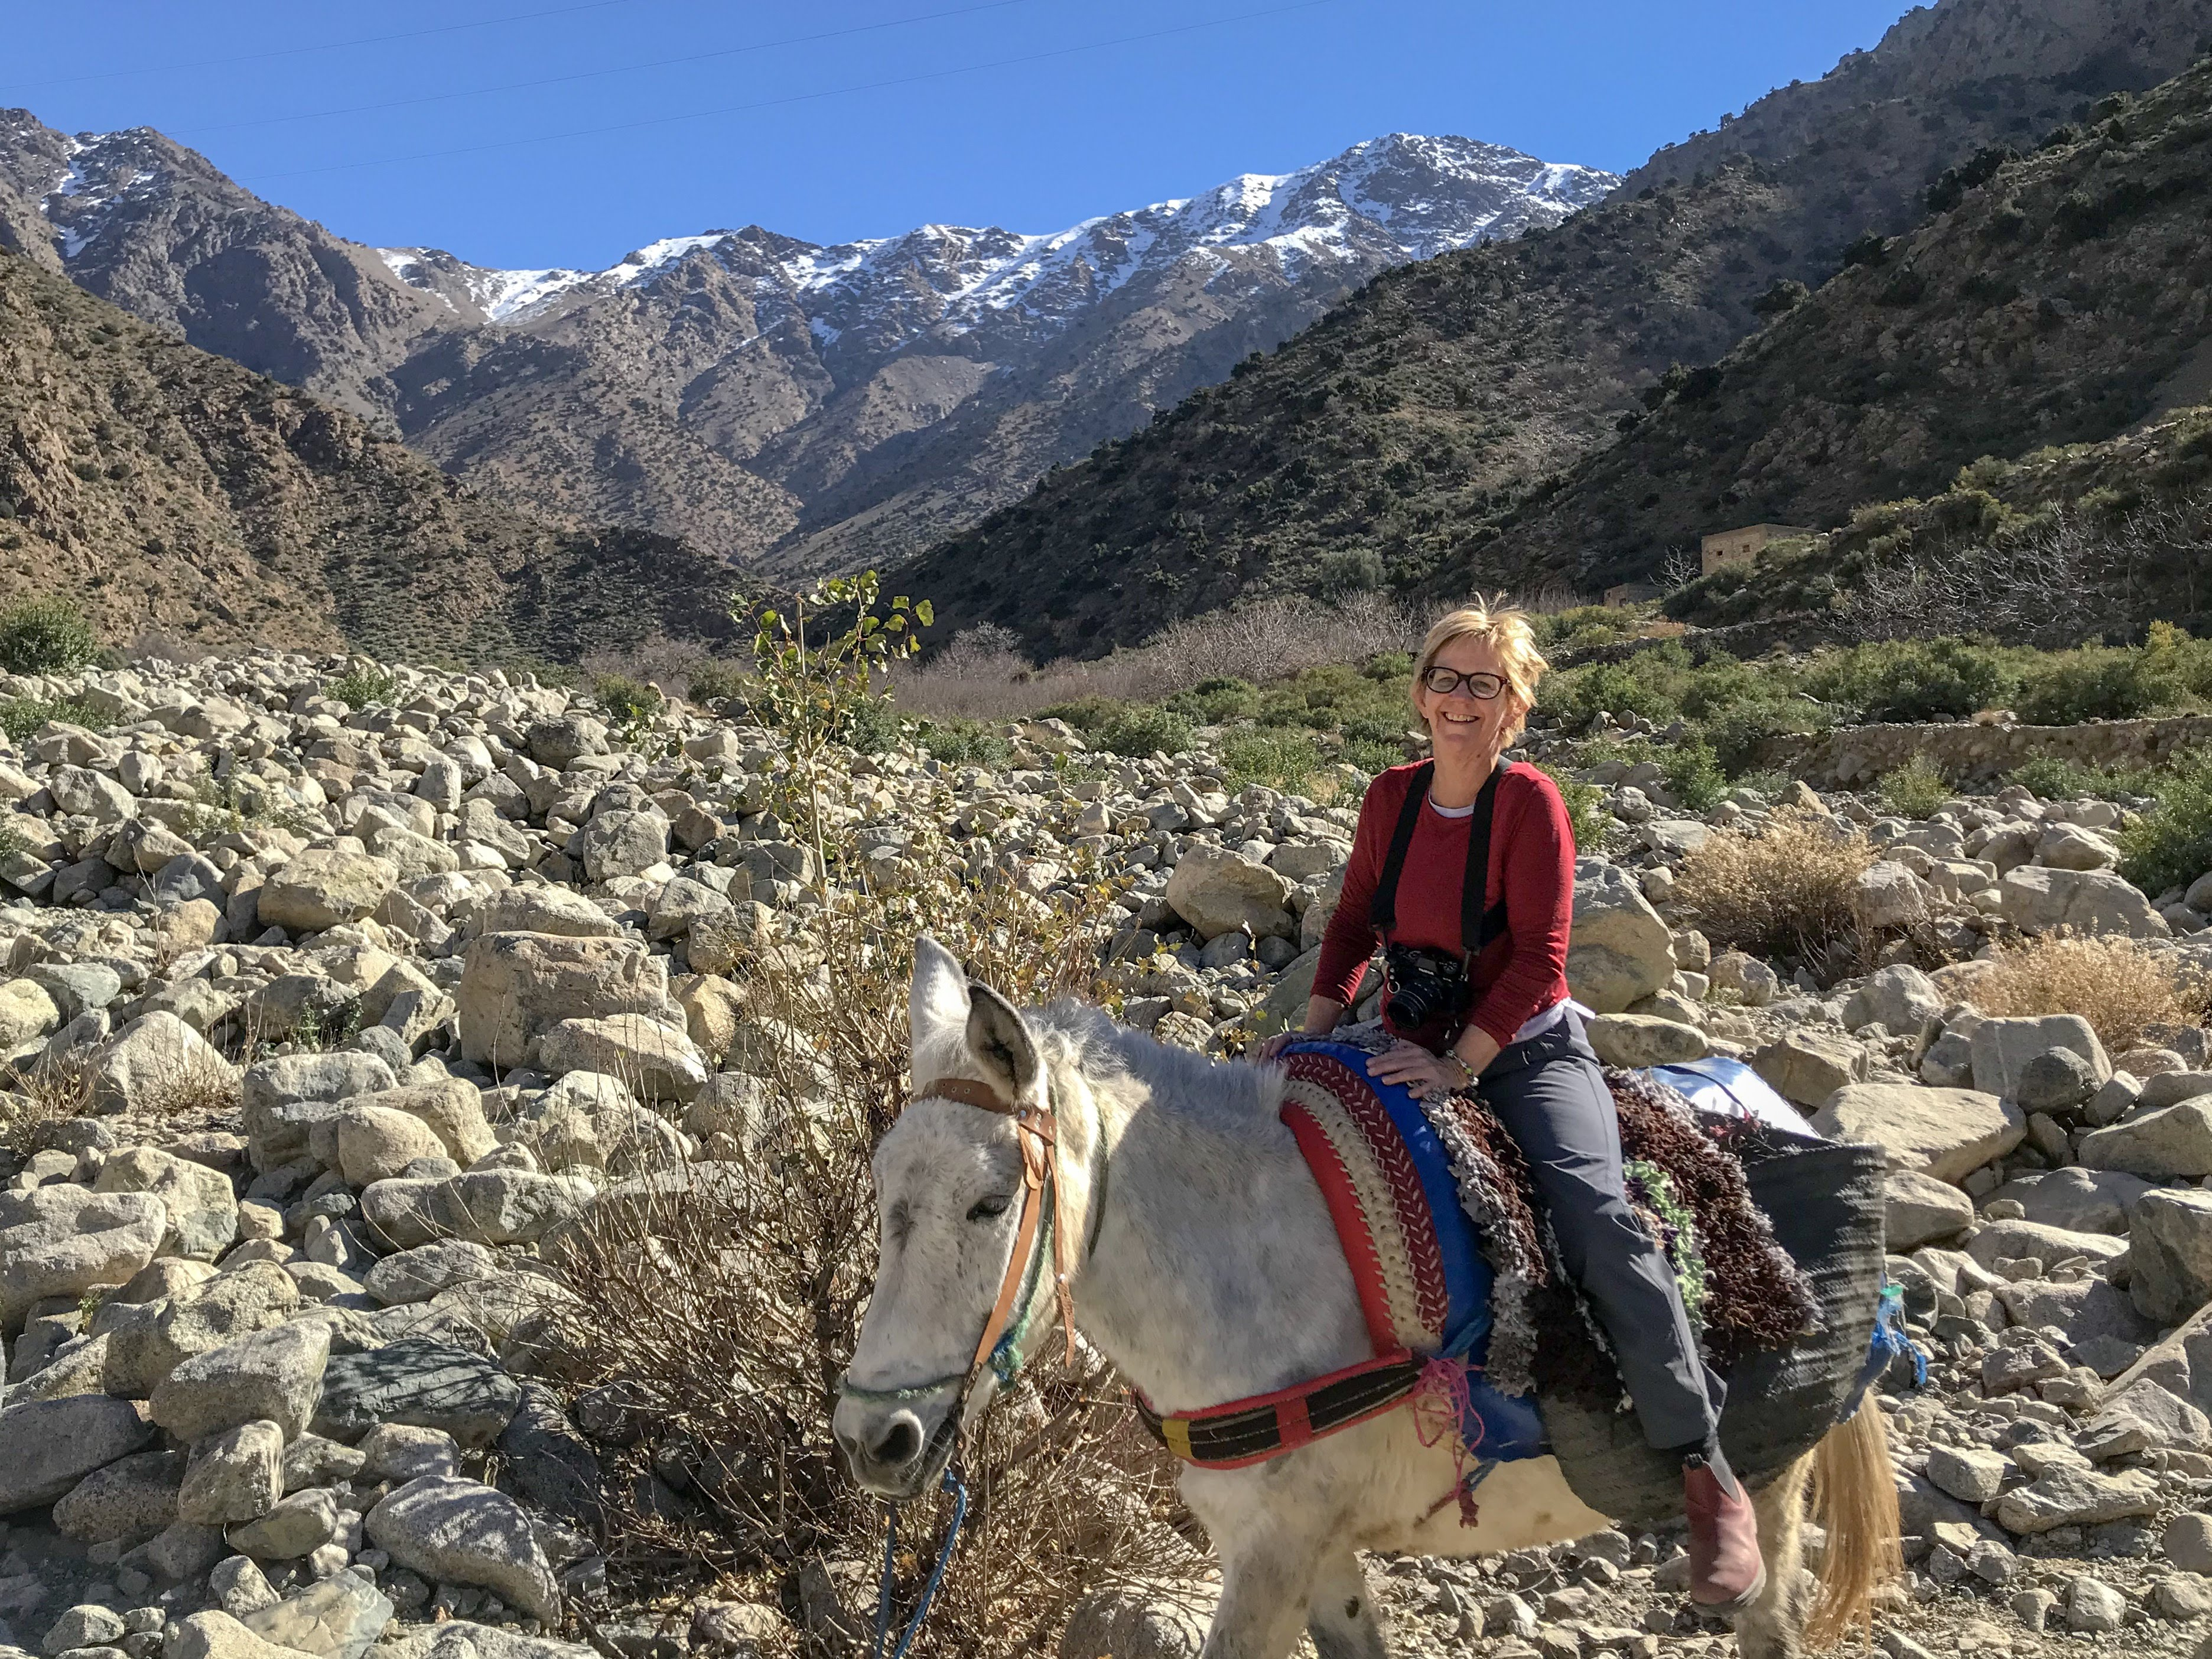 Riding a Mule, Ourika Valley, Morocco   photo by Luke Gulbrand